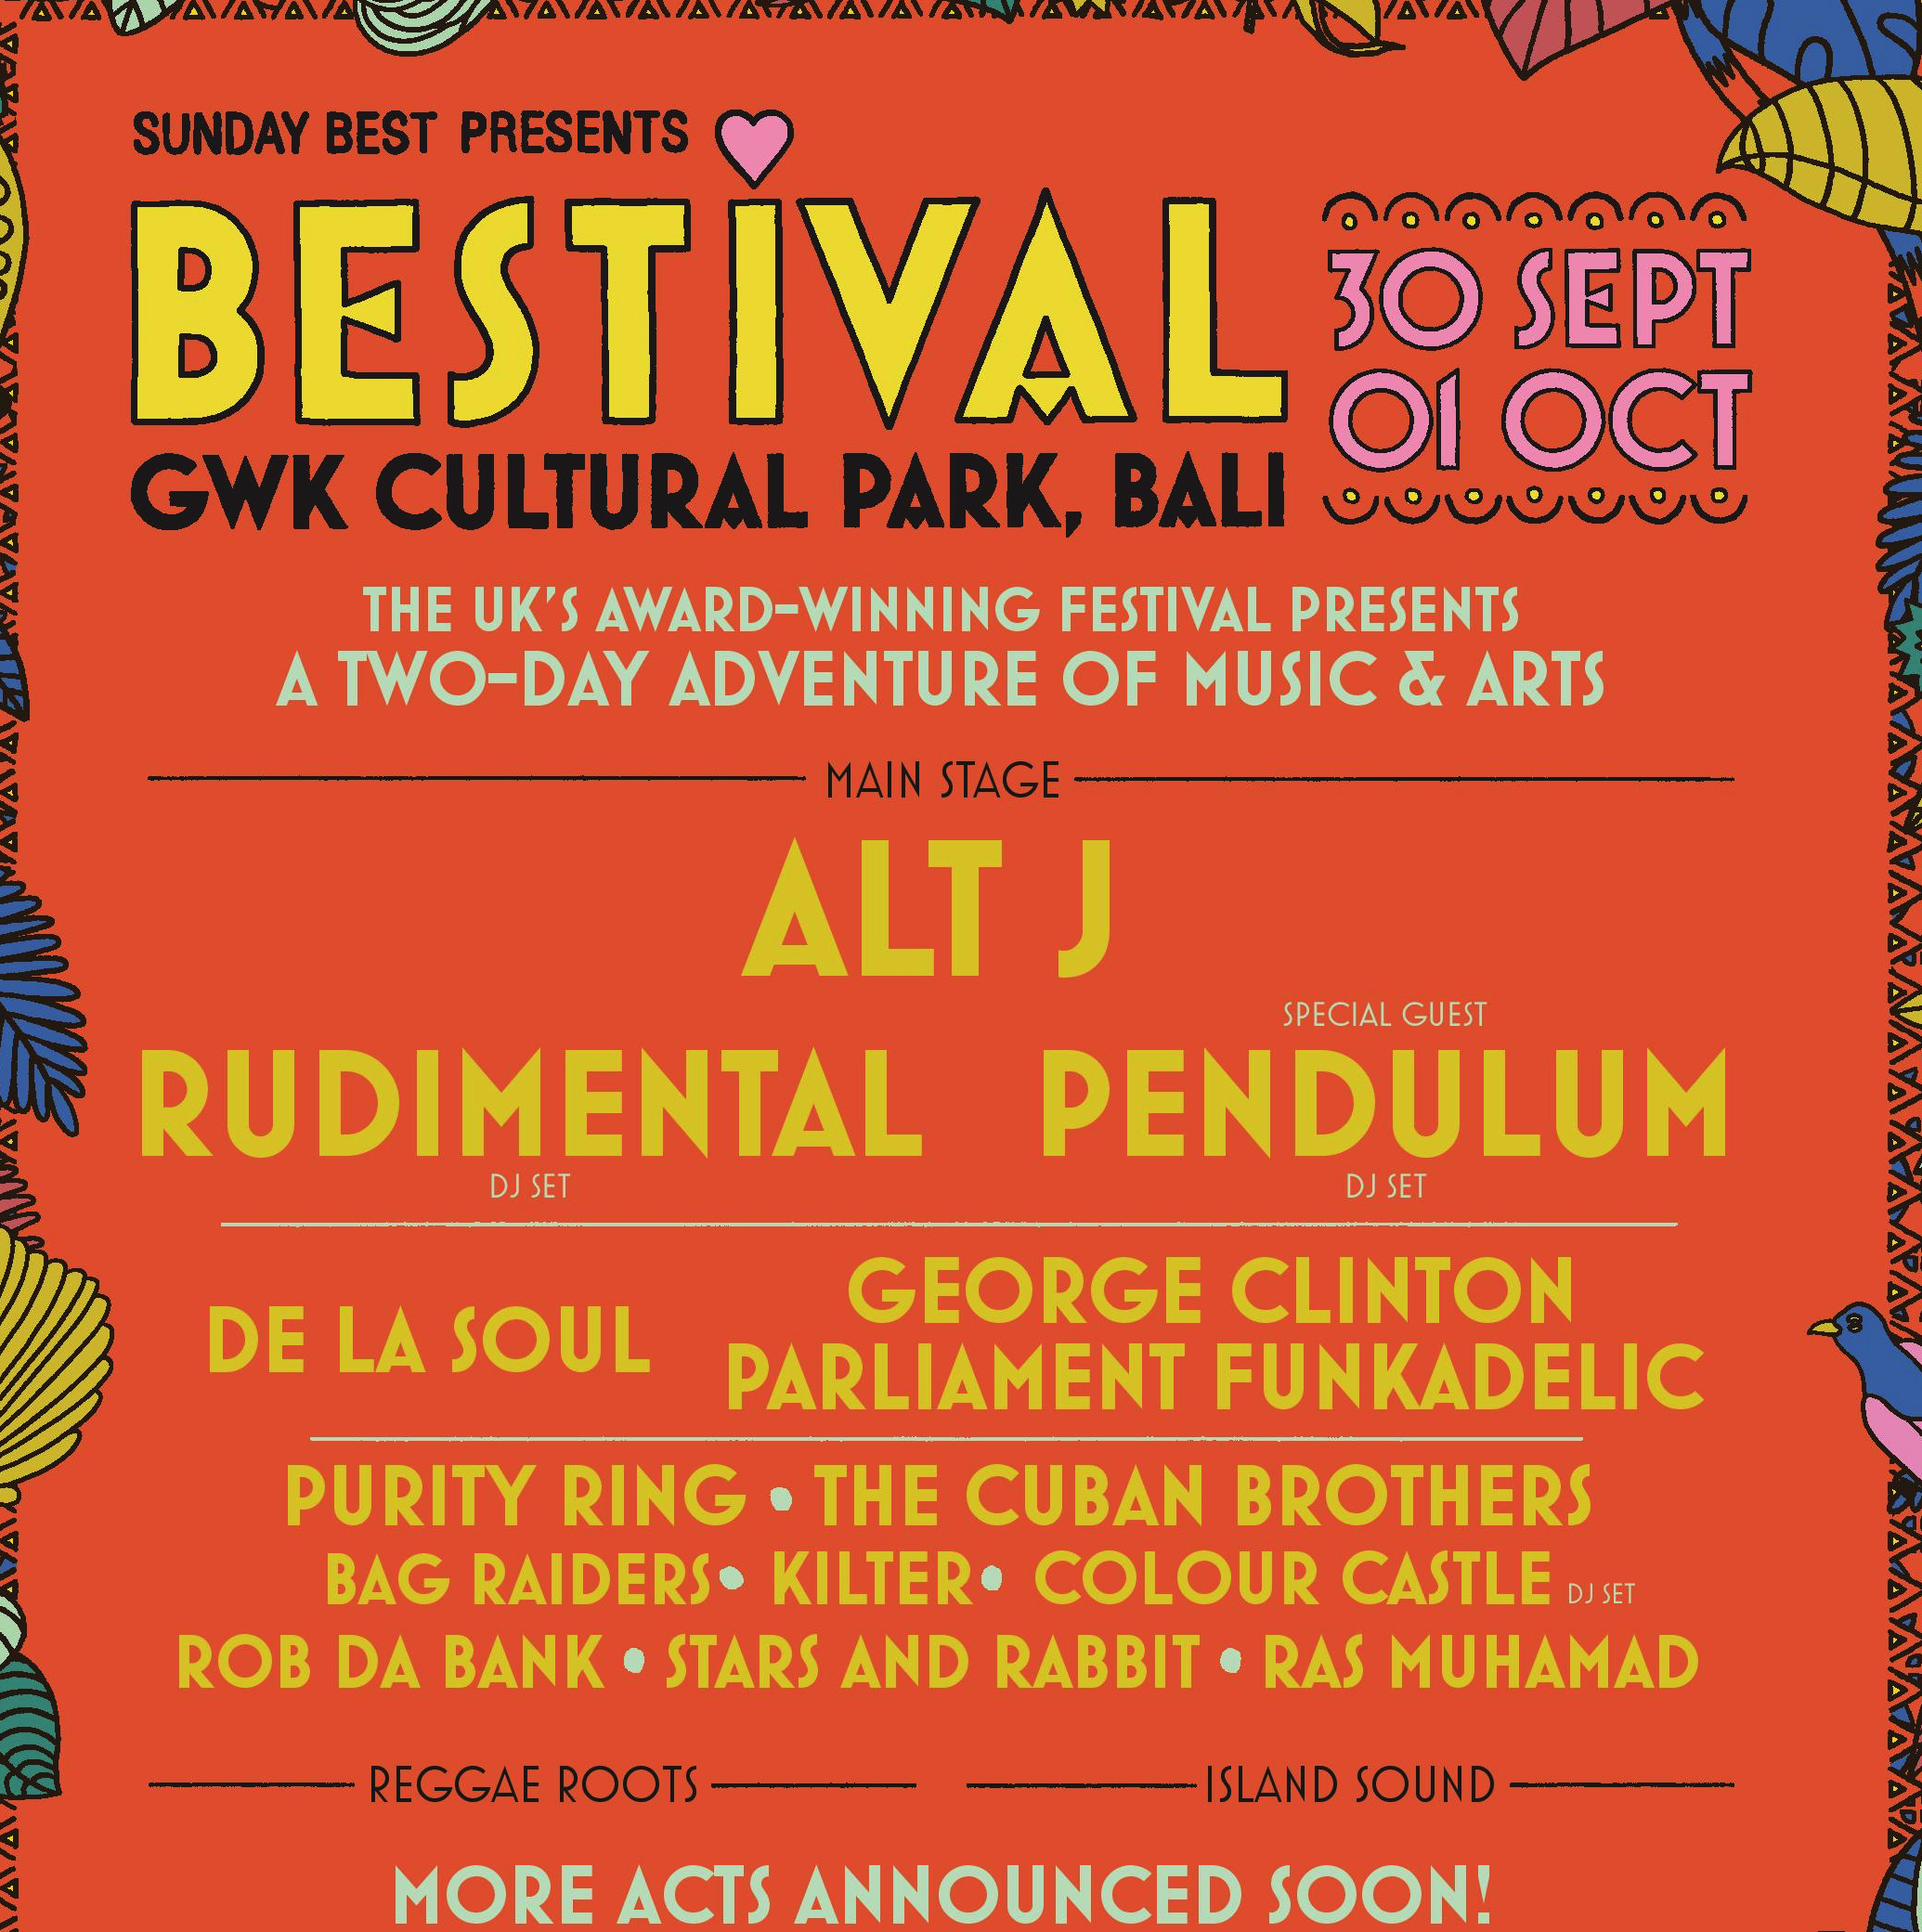 Street Poster A4 v2 BB17 page 001 - Skutis Corporation goes BESTIVAL - BALI